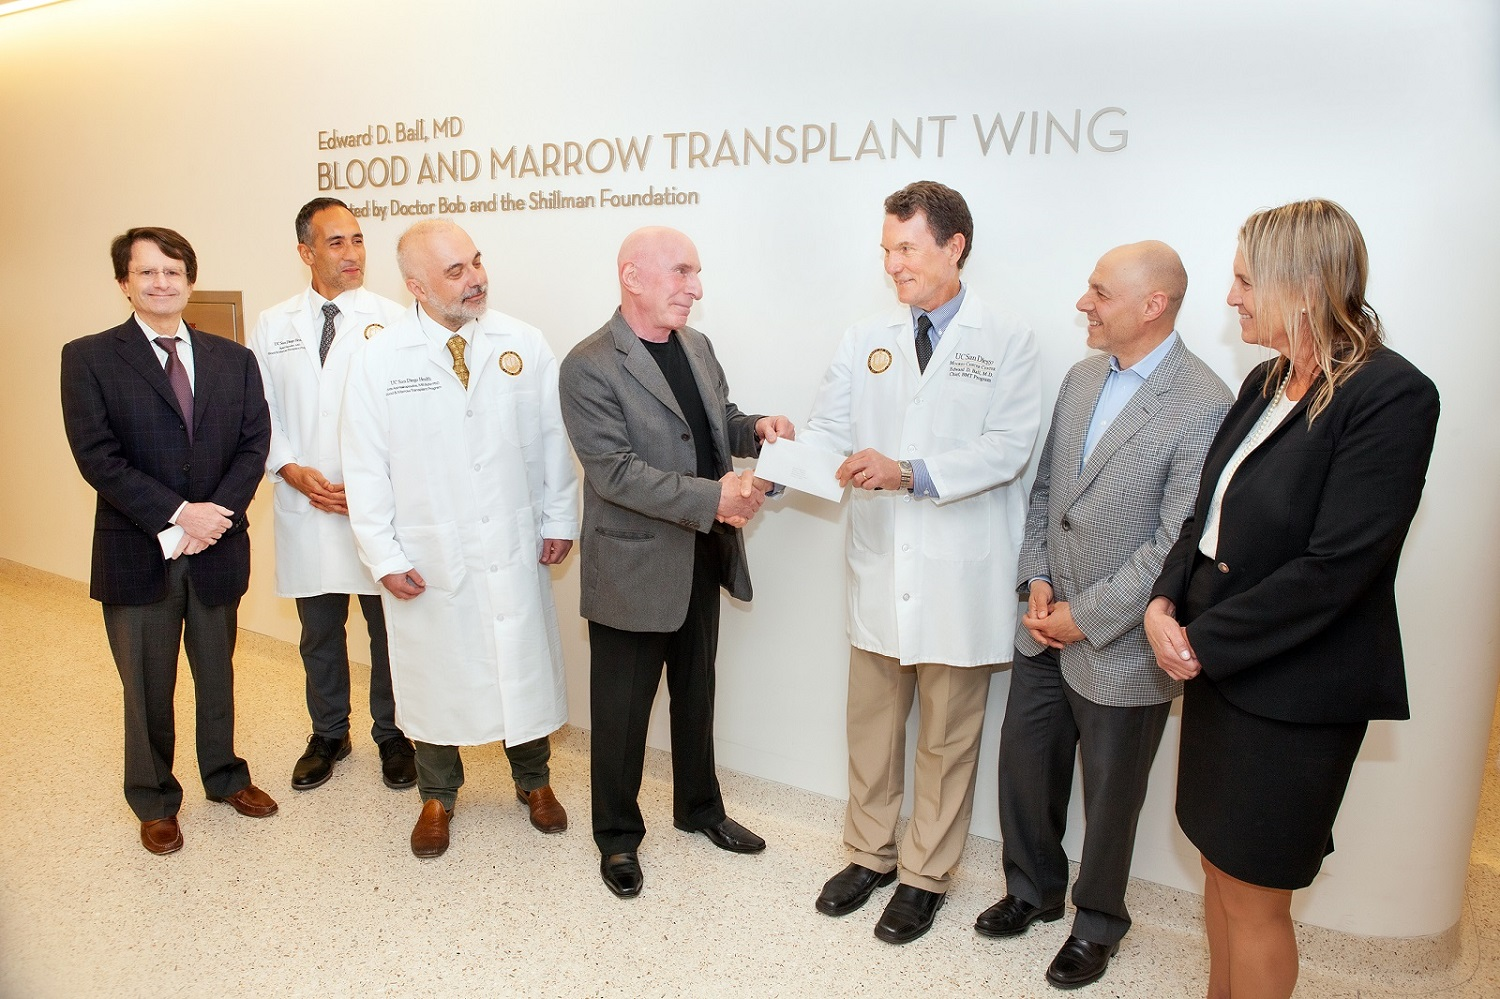 Dr. Bob and Dr. Ball in front of new sign for Blood and Marrow Transplant Wing